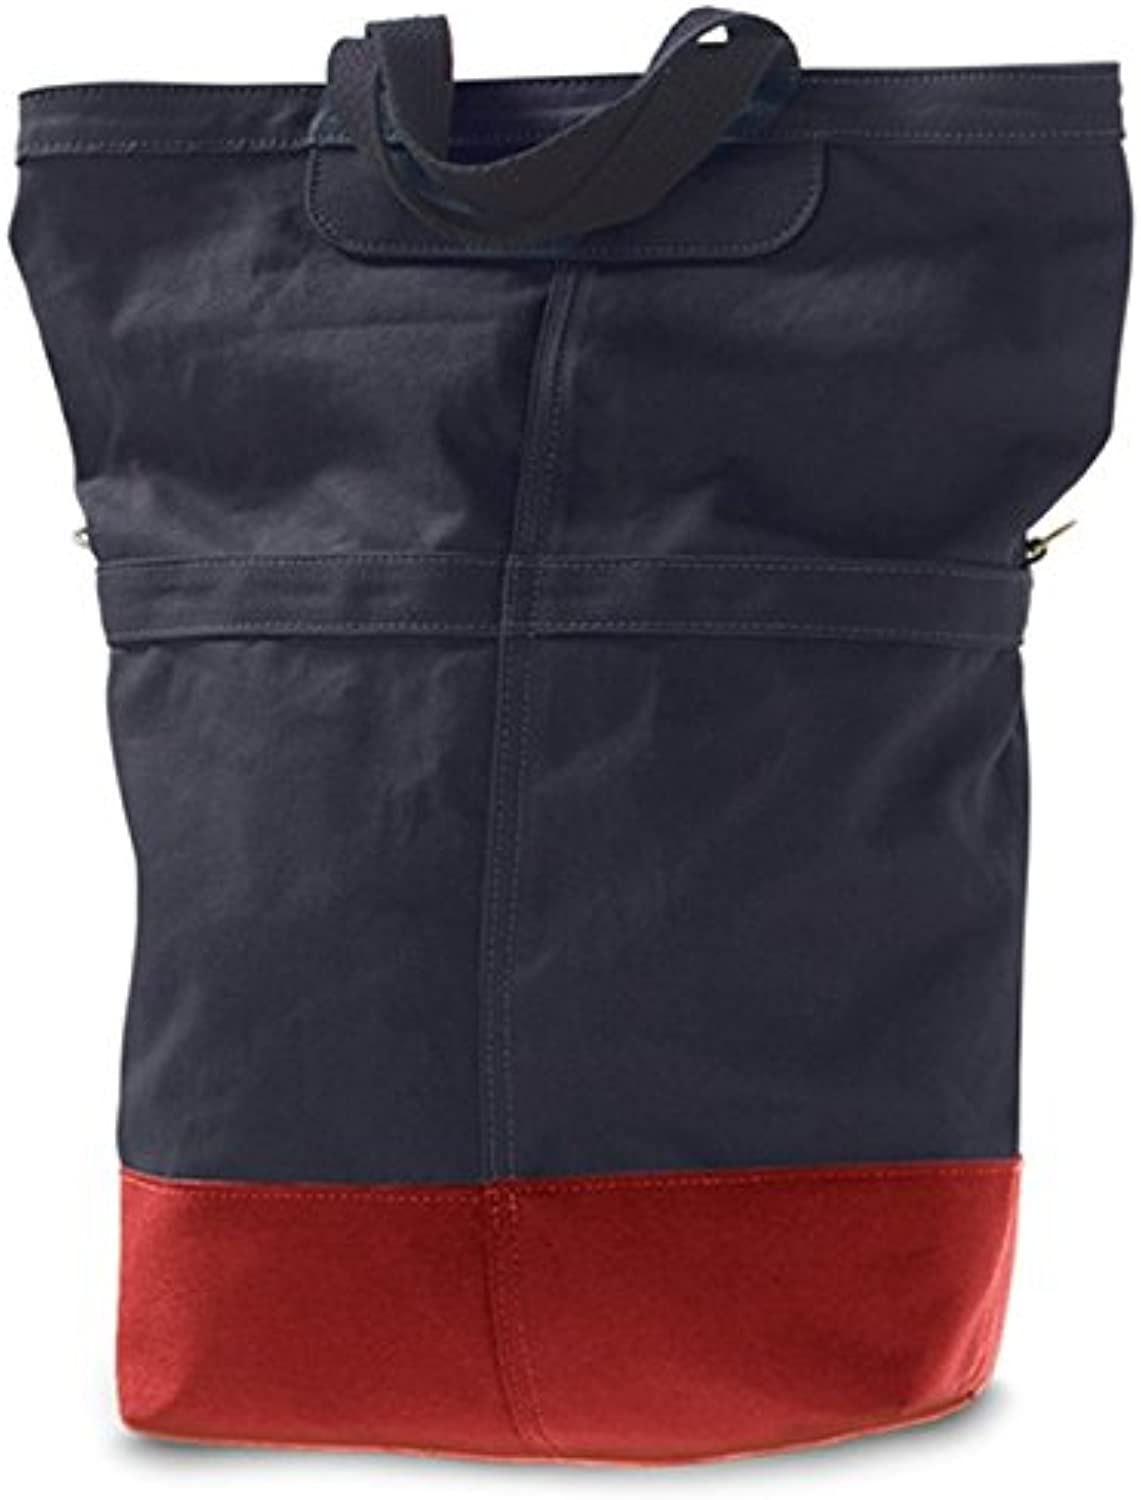 Linus The Sac  Navy Red